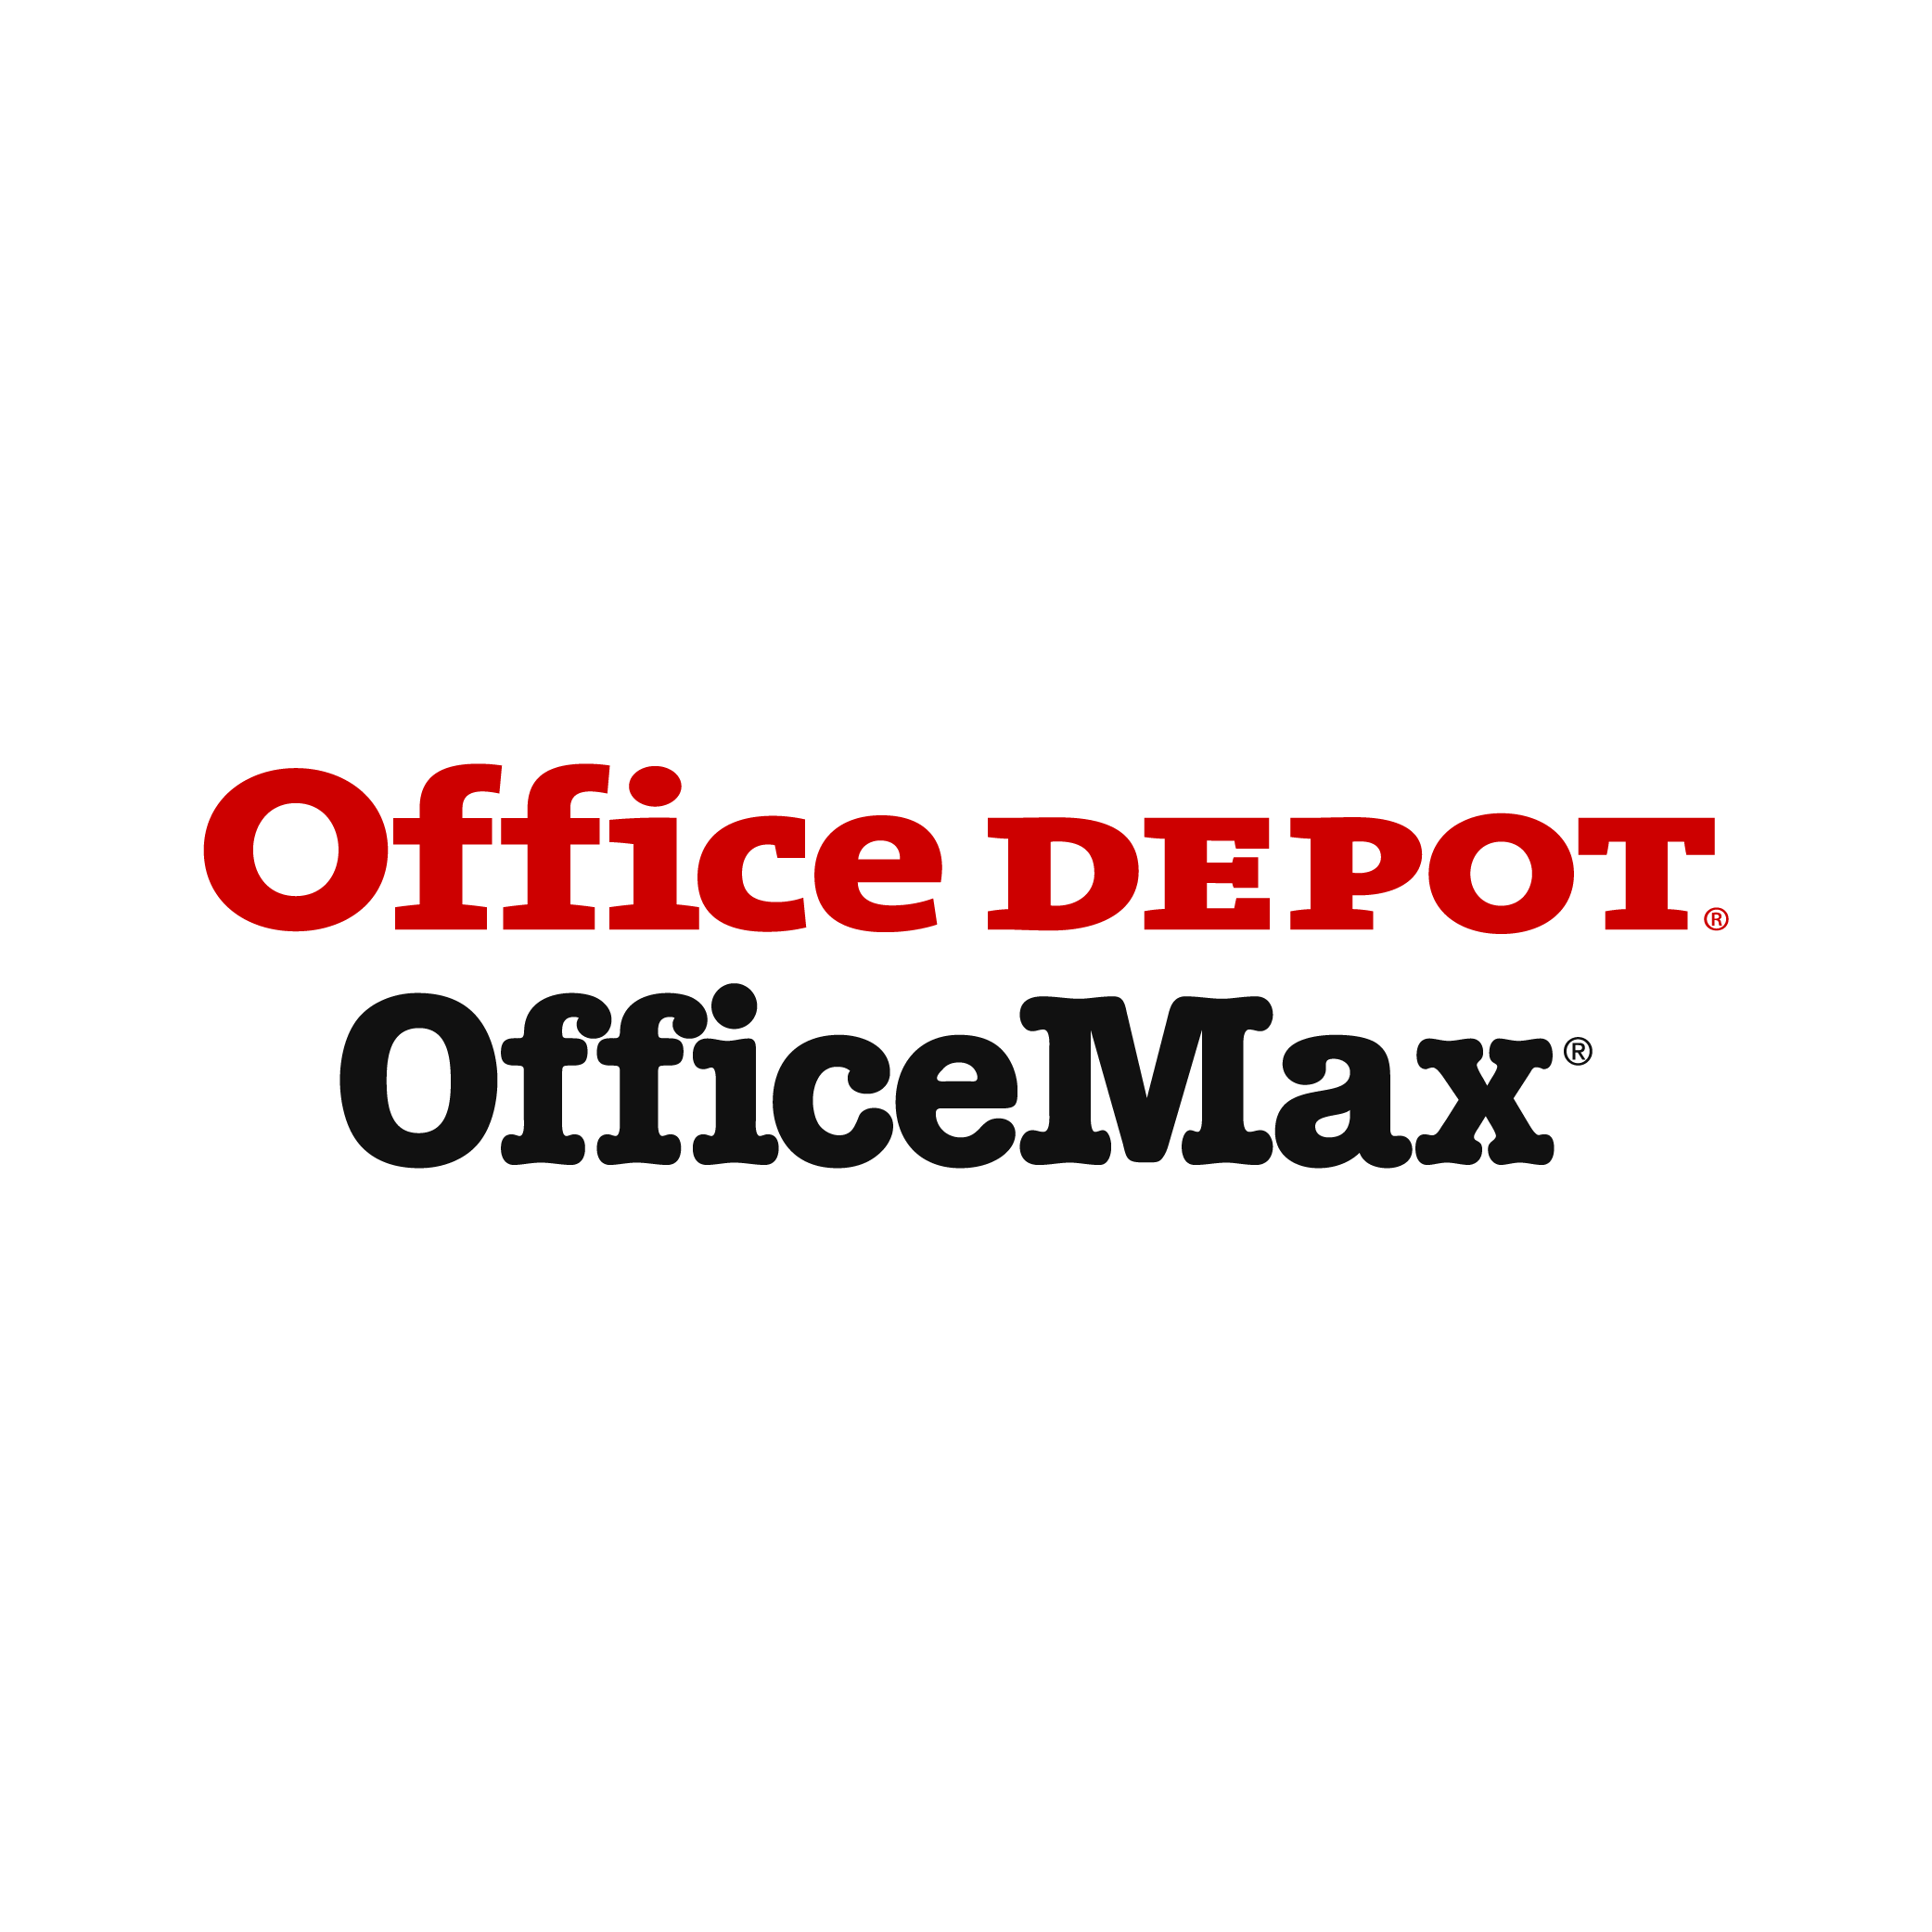 Office Depot image 1